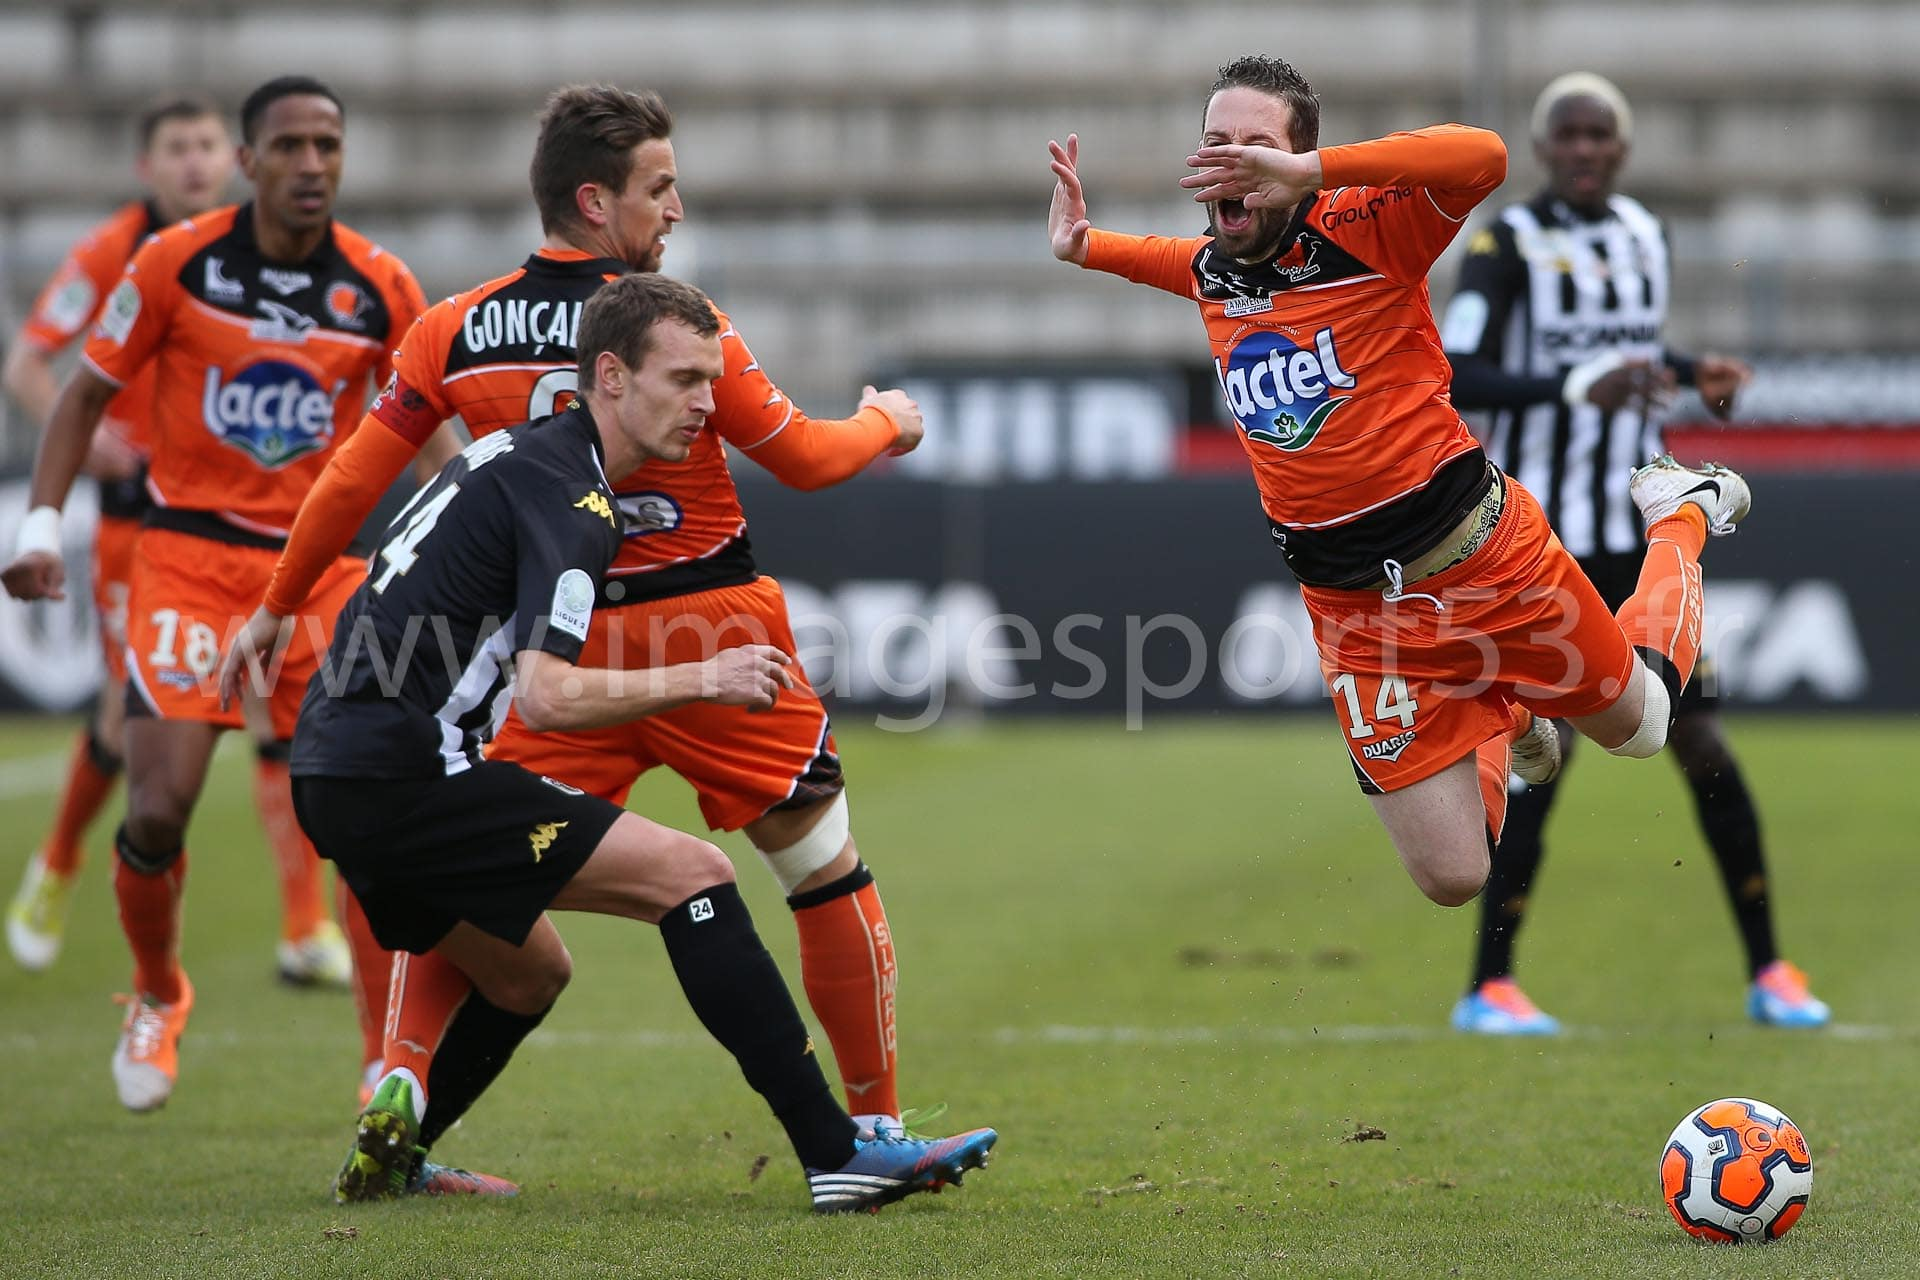 Romain THOMAS (Angers SCO), Guillaume RIPPERT (Stade Lavallois)